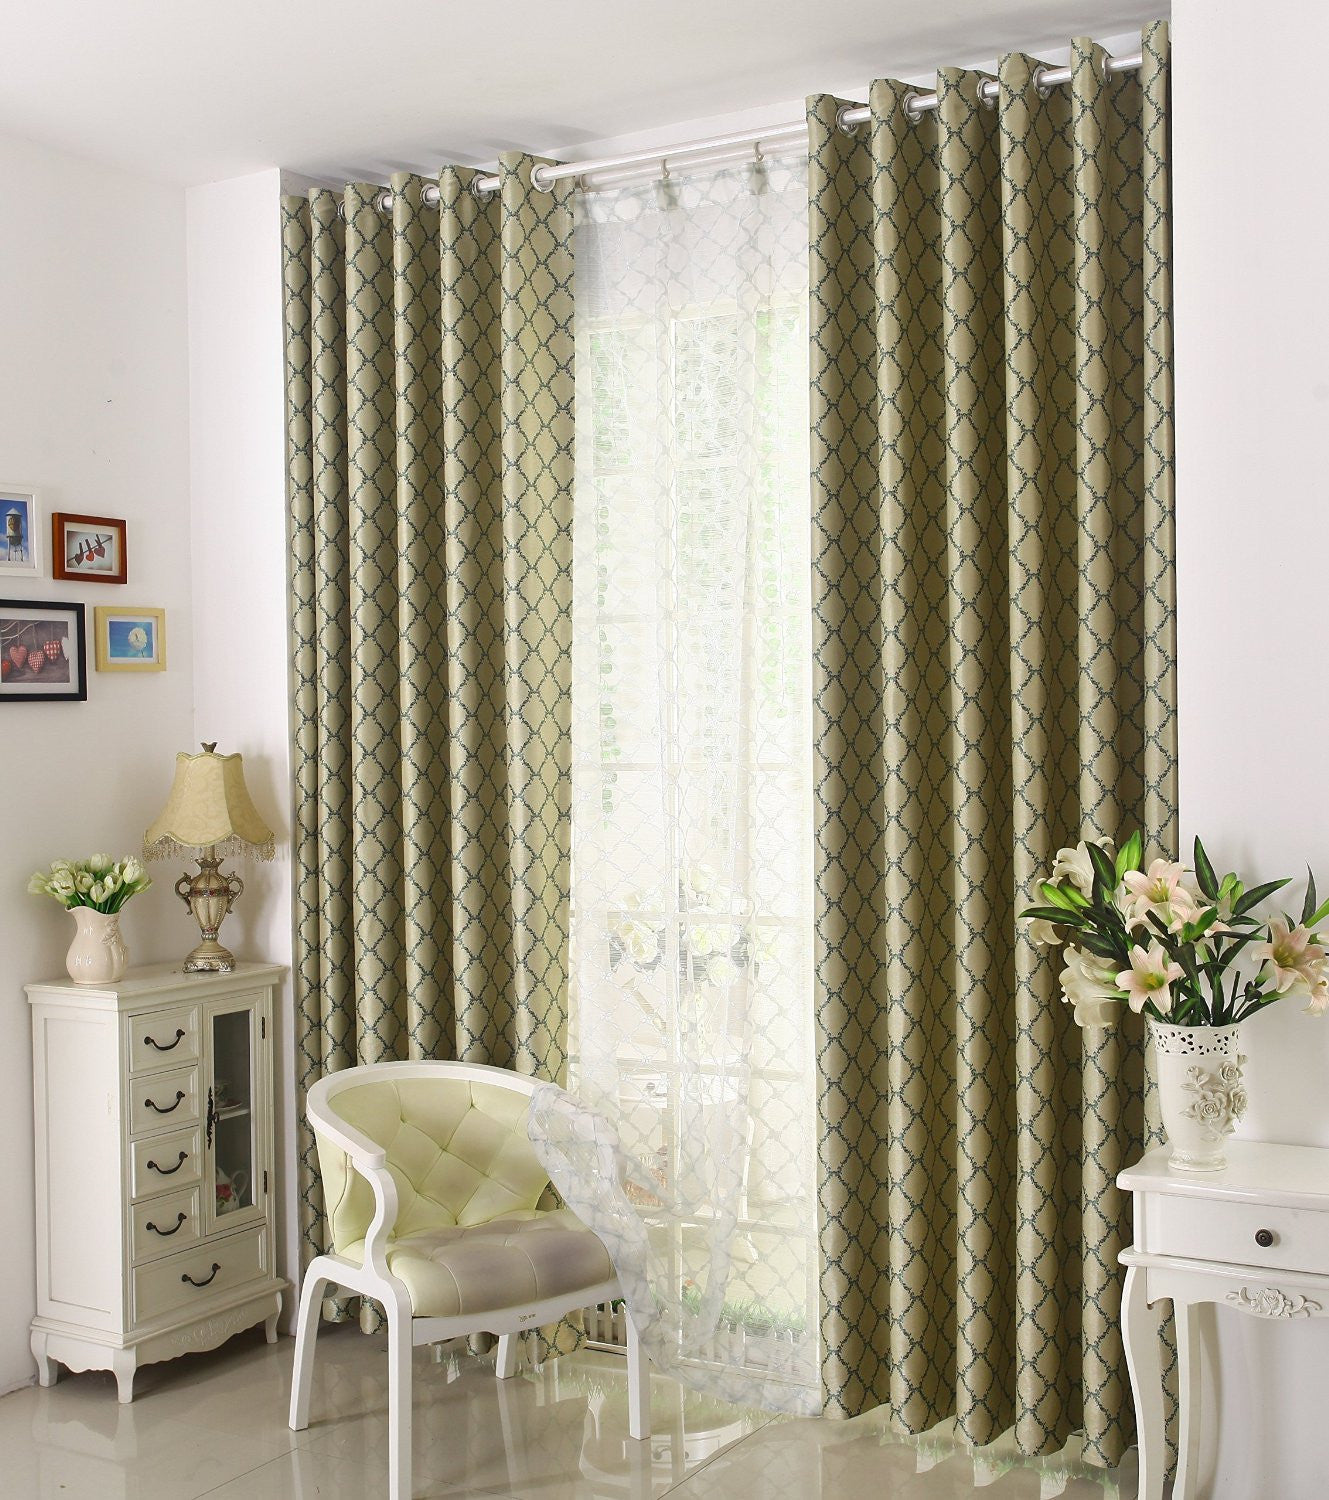 "Airdodo Classic Euro Style Forest Green Geometric 60"" x 95"" Grommet Top Curtain (One Panel)"